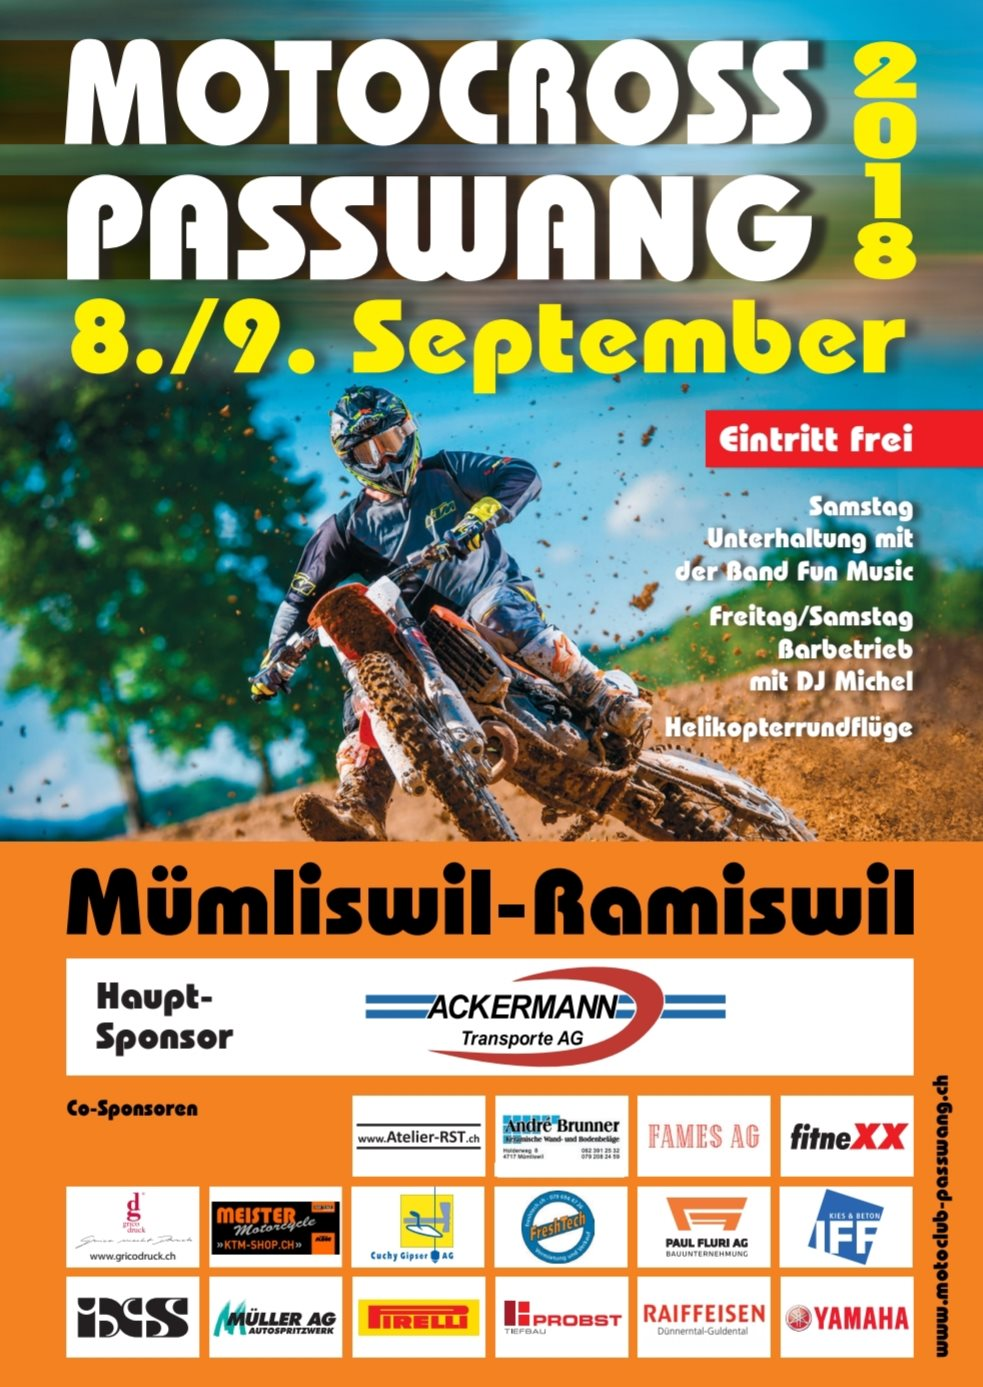 Meister Motorcycle AG-News: Motocross Passwang